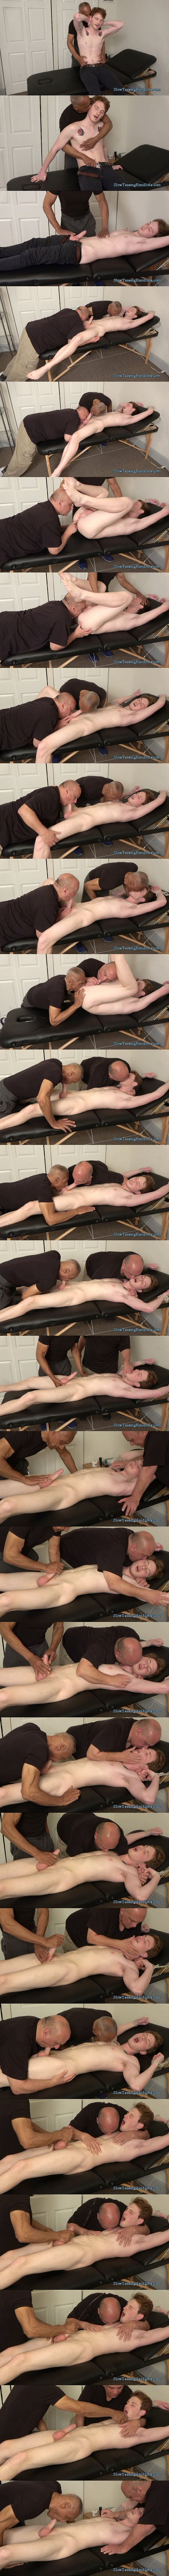 Bi-sexual college student Dillon kissed, sucked, rimmed and jerked in Dillon Teased Unmercifully at Slowteasinghandjobs 01